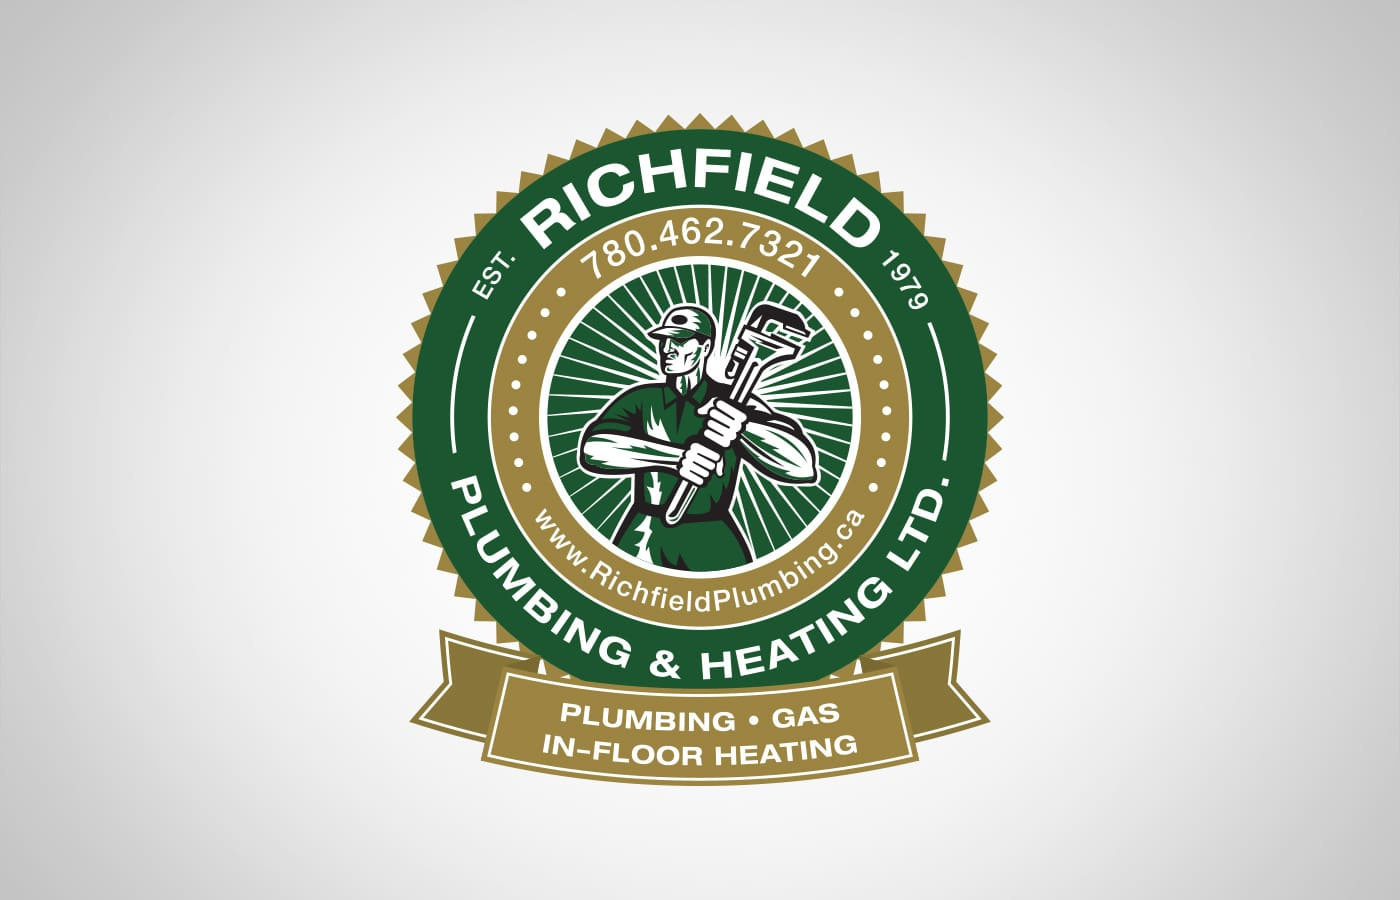 Edmonton Graphic Design | Richfield Plumbing and Heating Logo